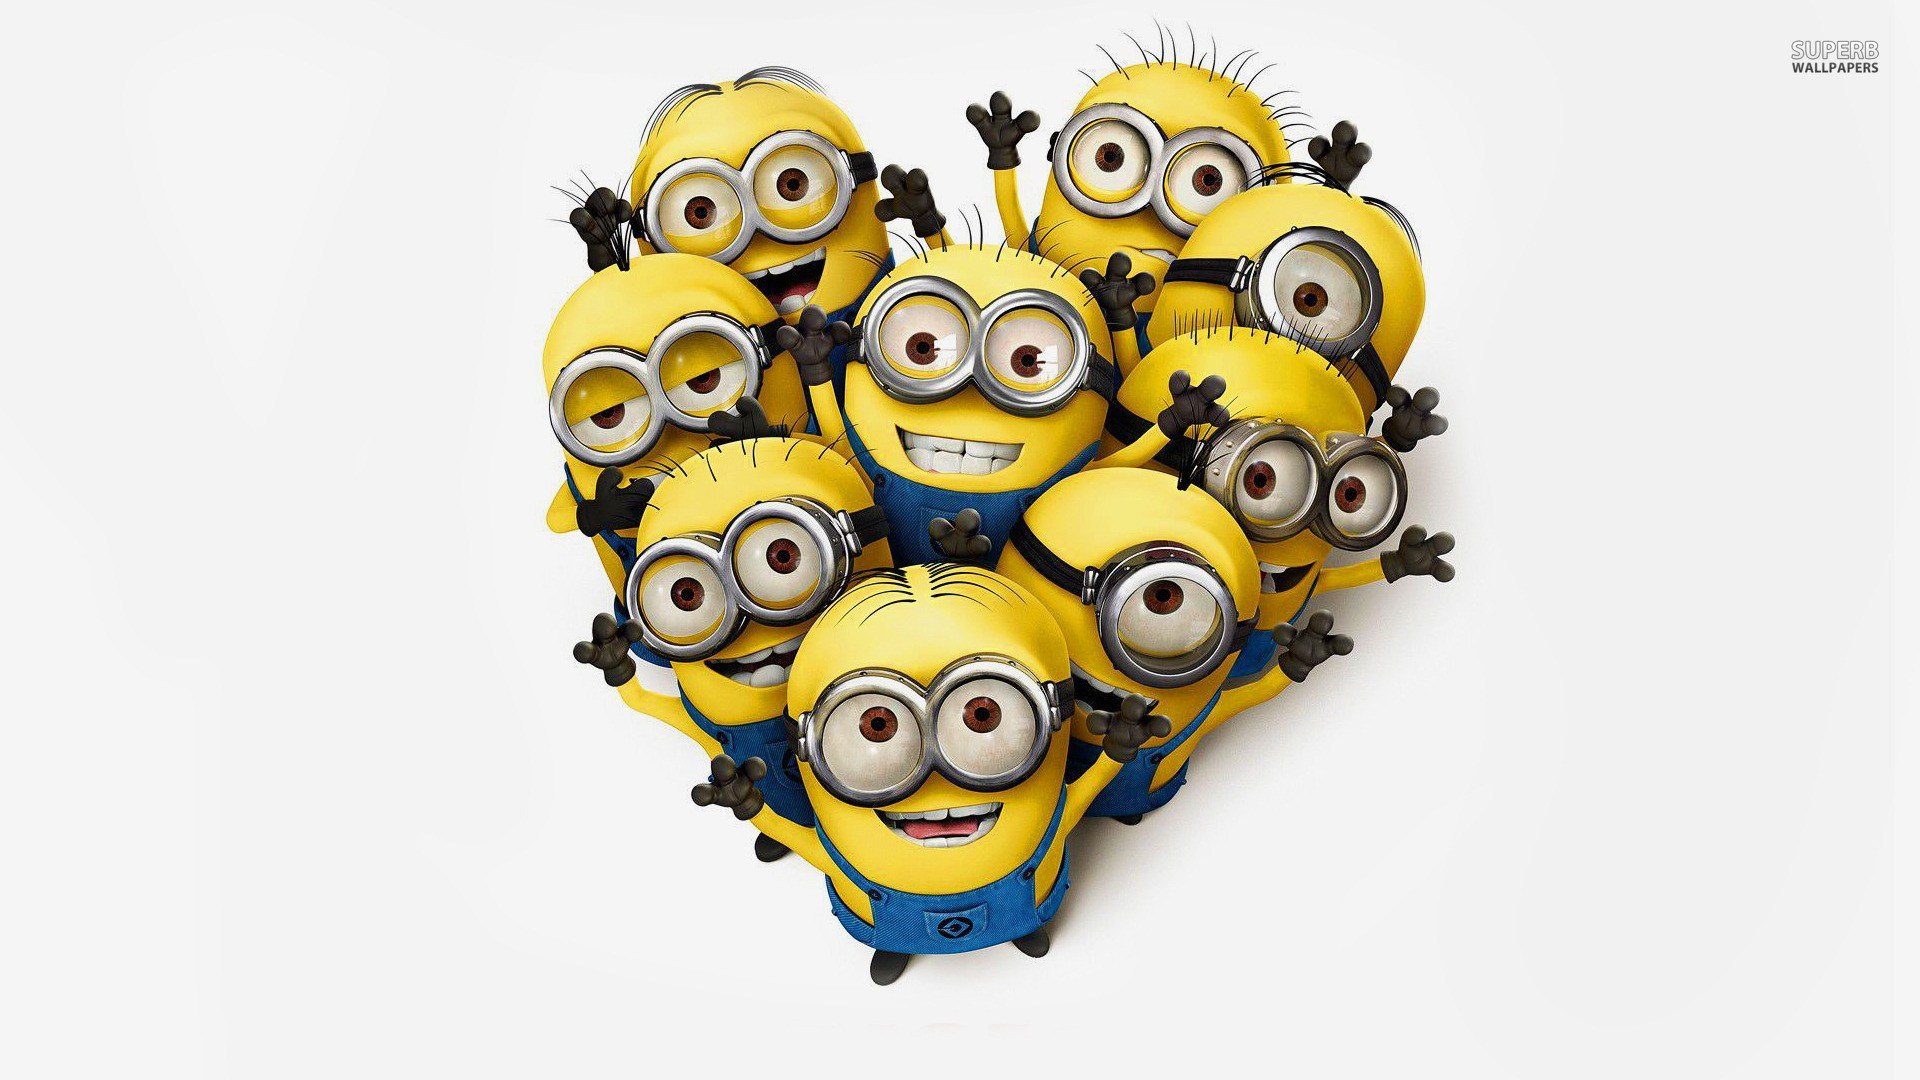 cute minions wallpaper hd for desktop